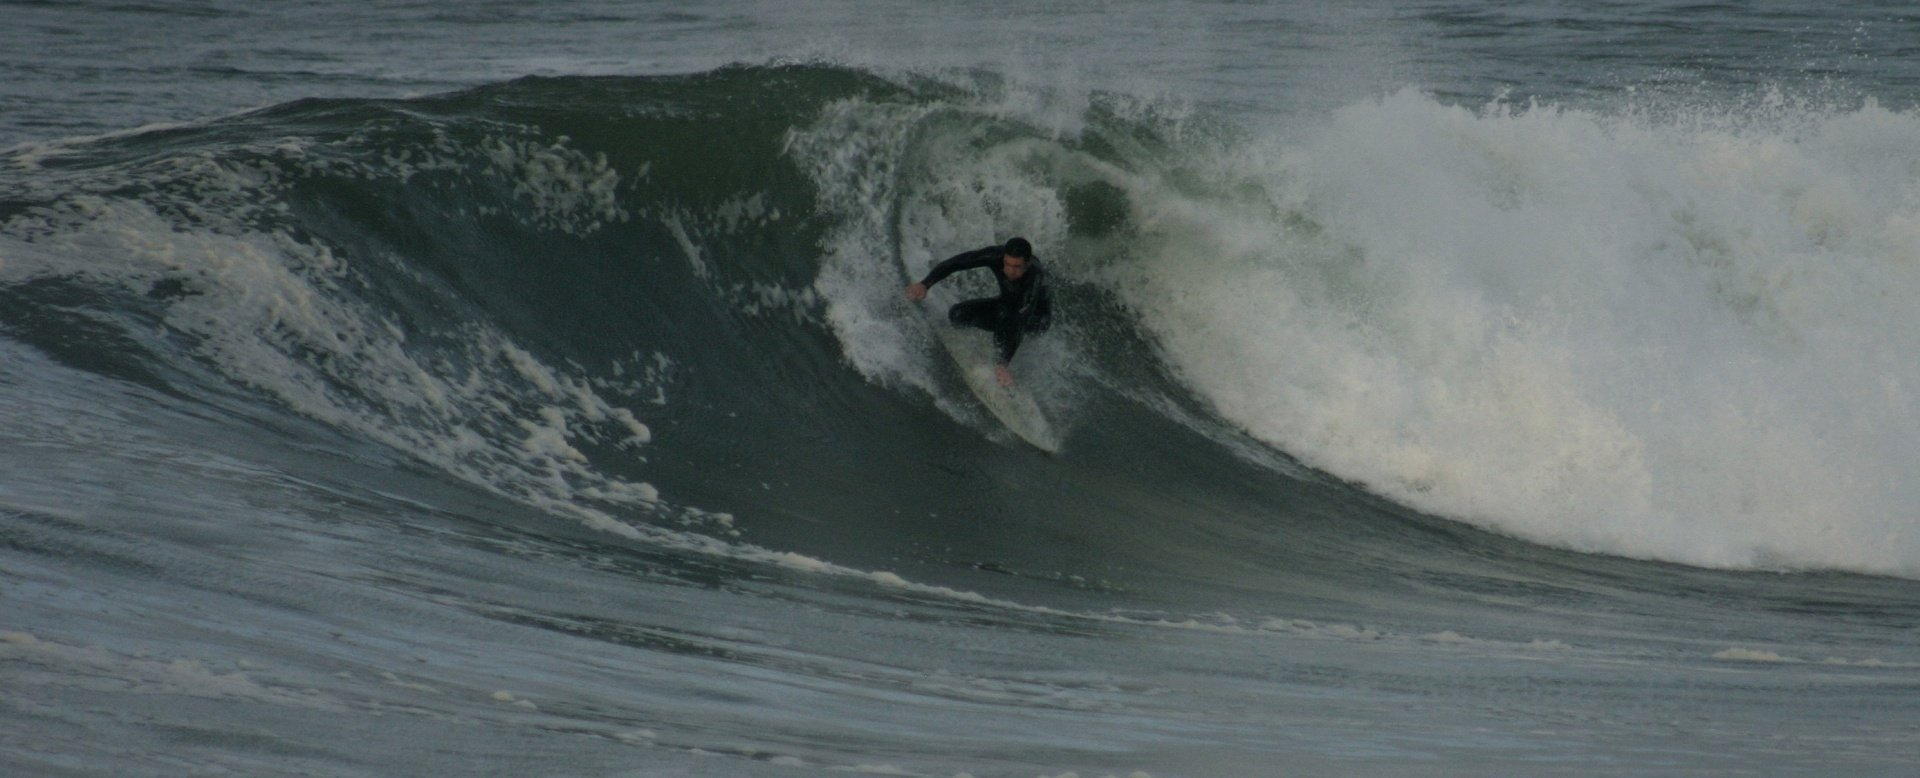 Michael Kelly's photo of Portrush